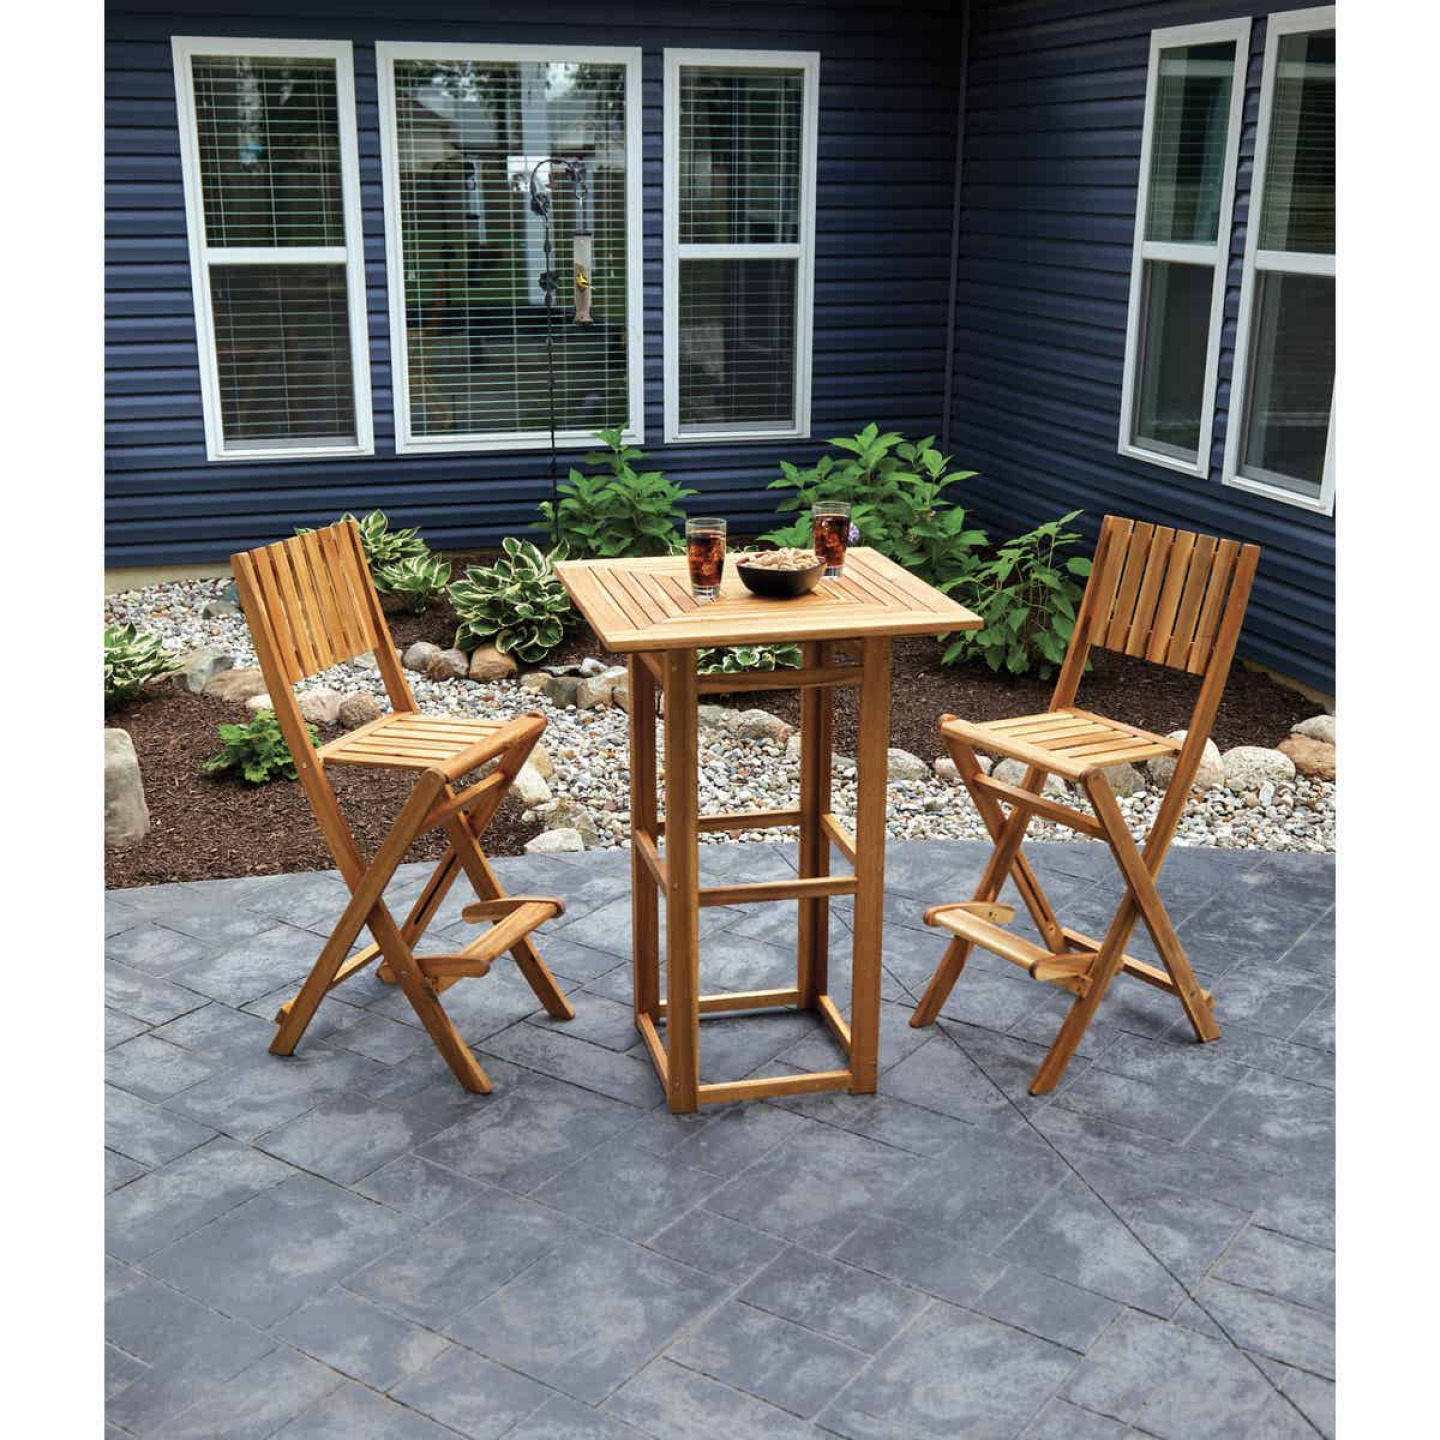 Outdoor Expressions 3-Piece Bar Height Bistro Set Image 3